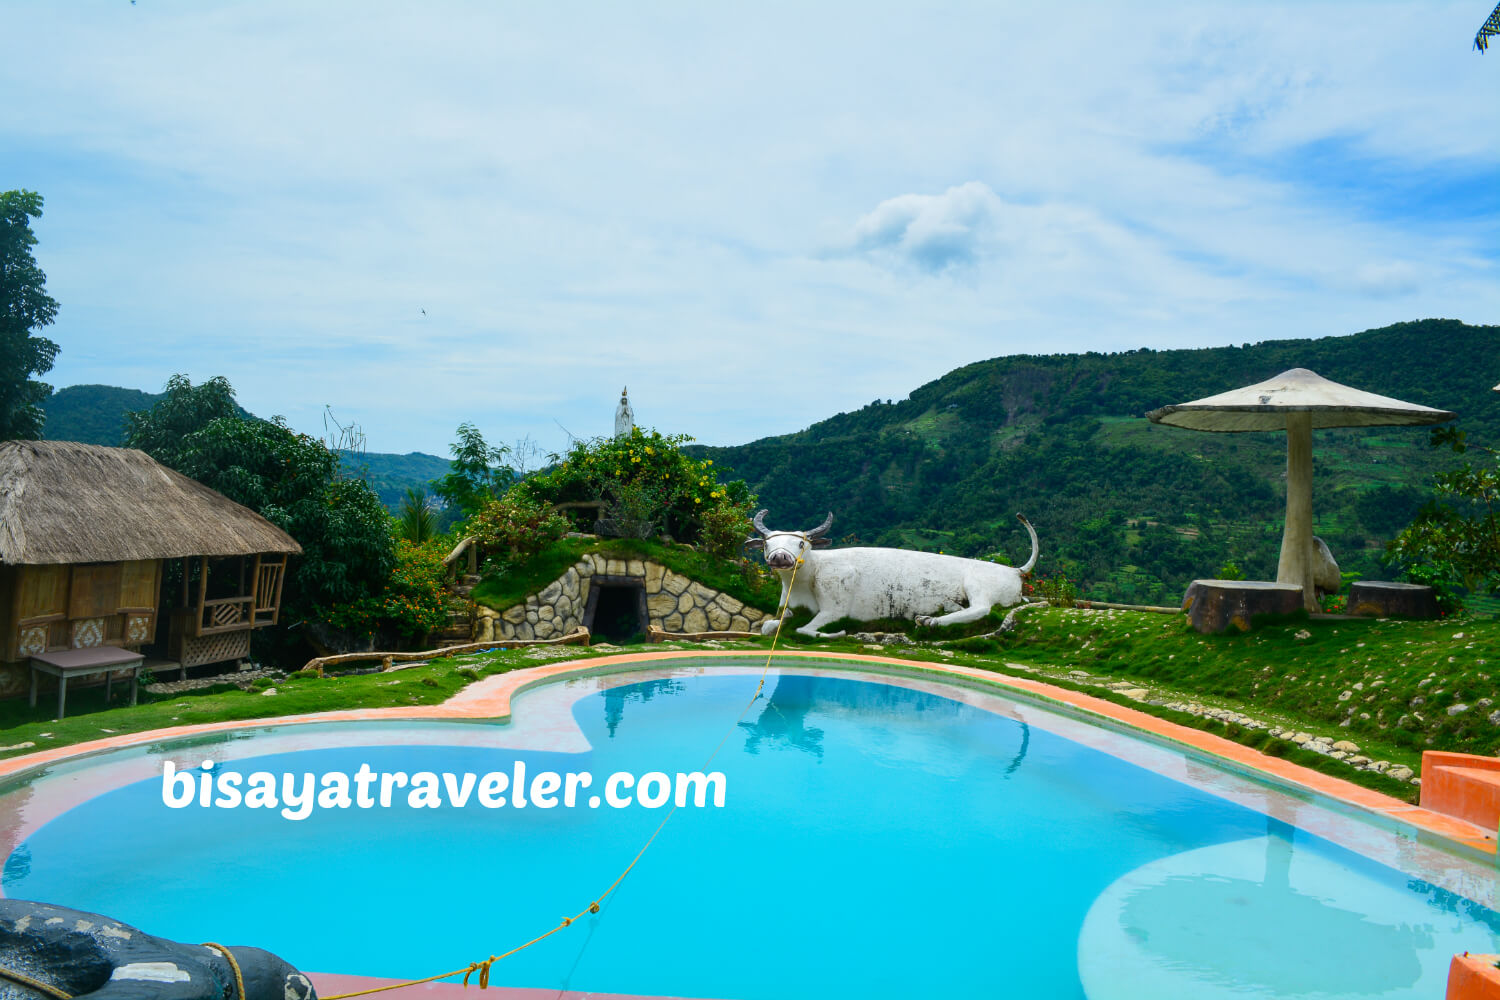 Coal mountain resort a scenic retreat tucked away in for Pool garden mountain resort argao